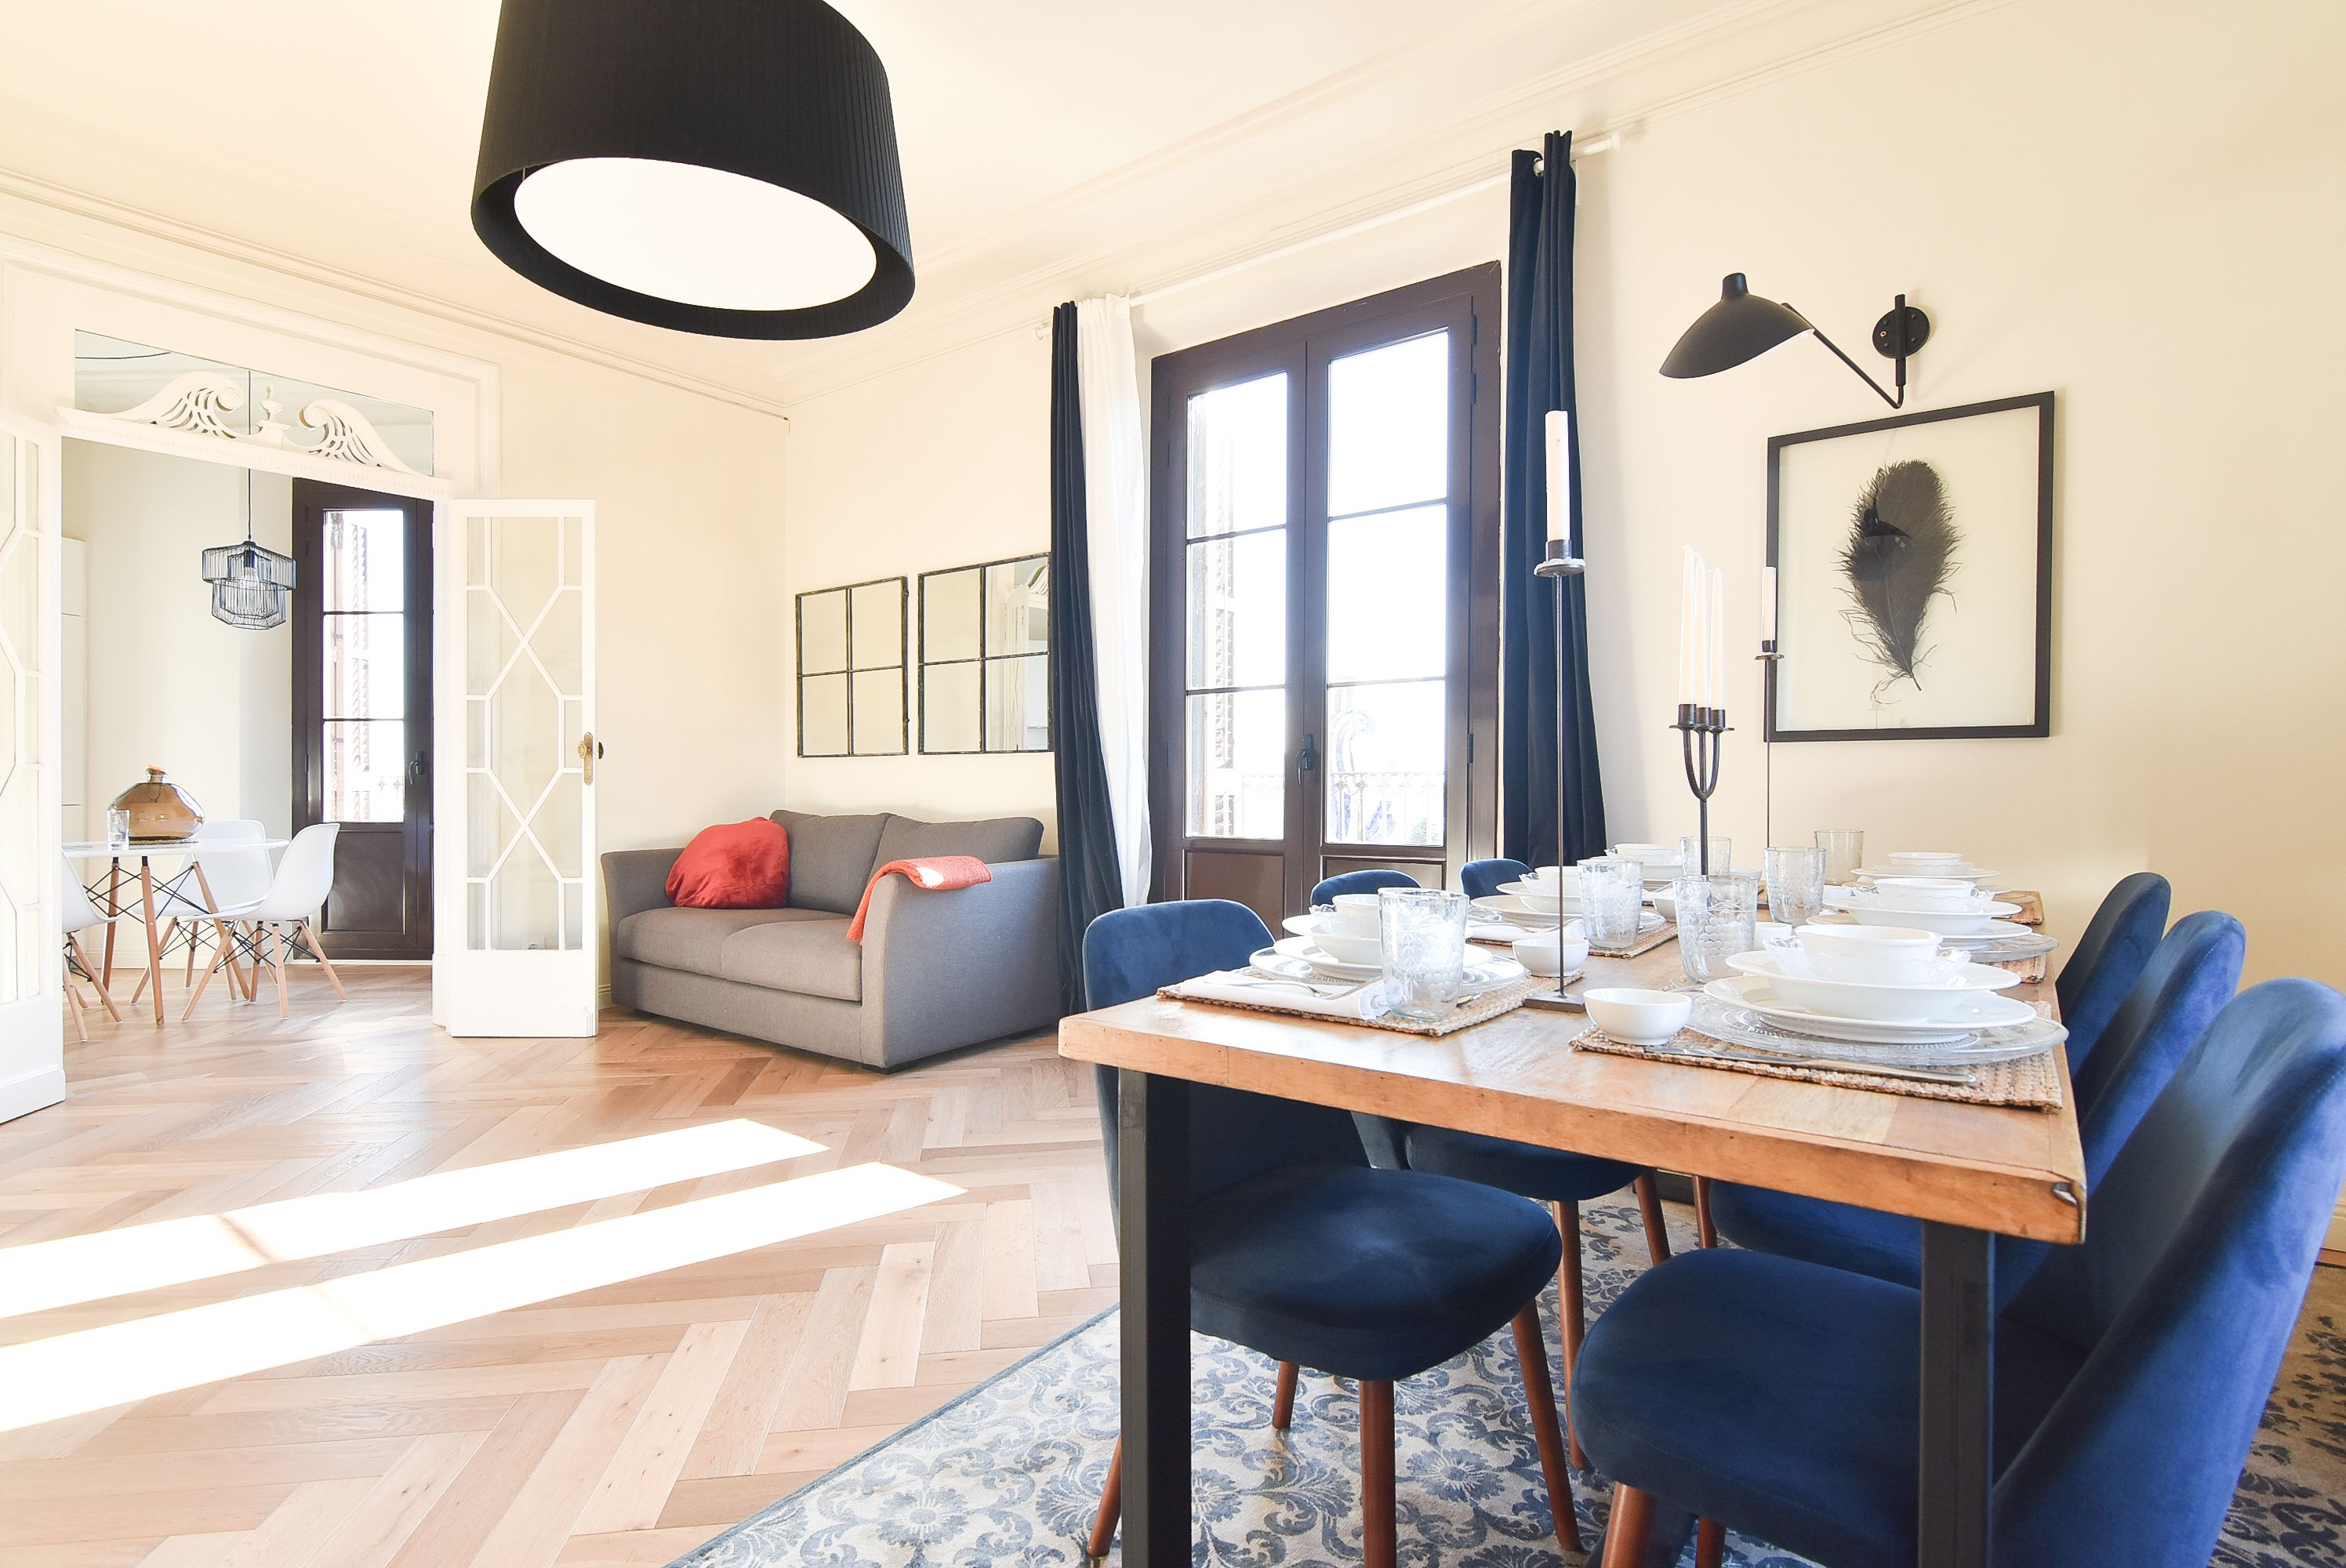 4. Salon Comedor - Living and Dining room | 1840 Apartments